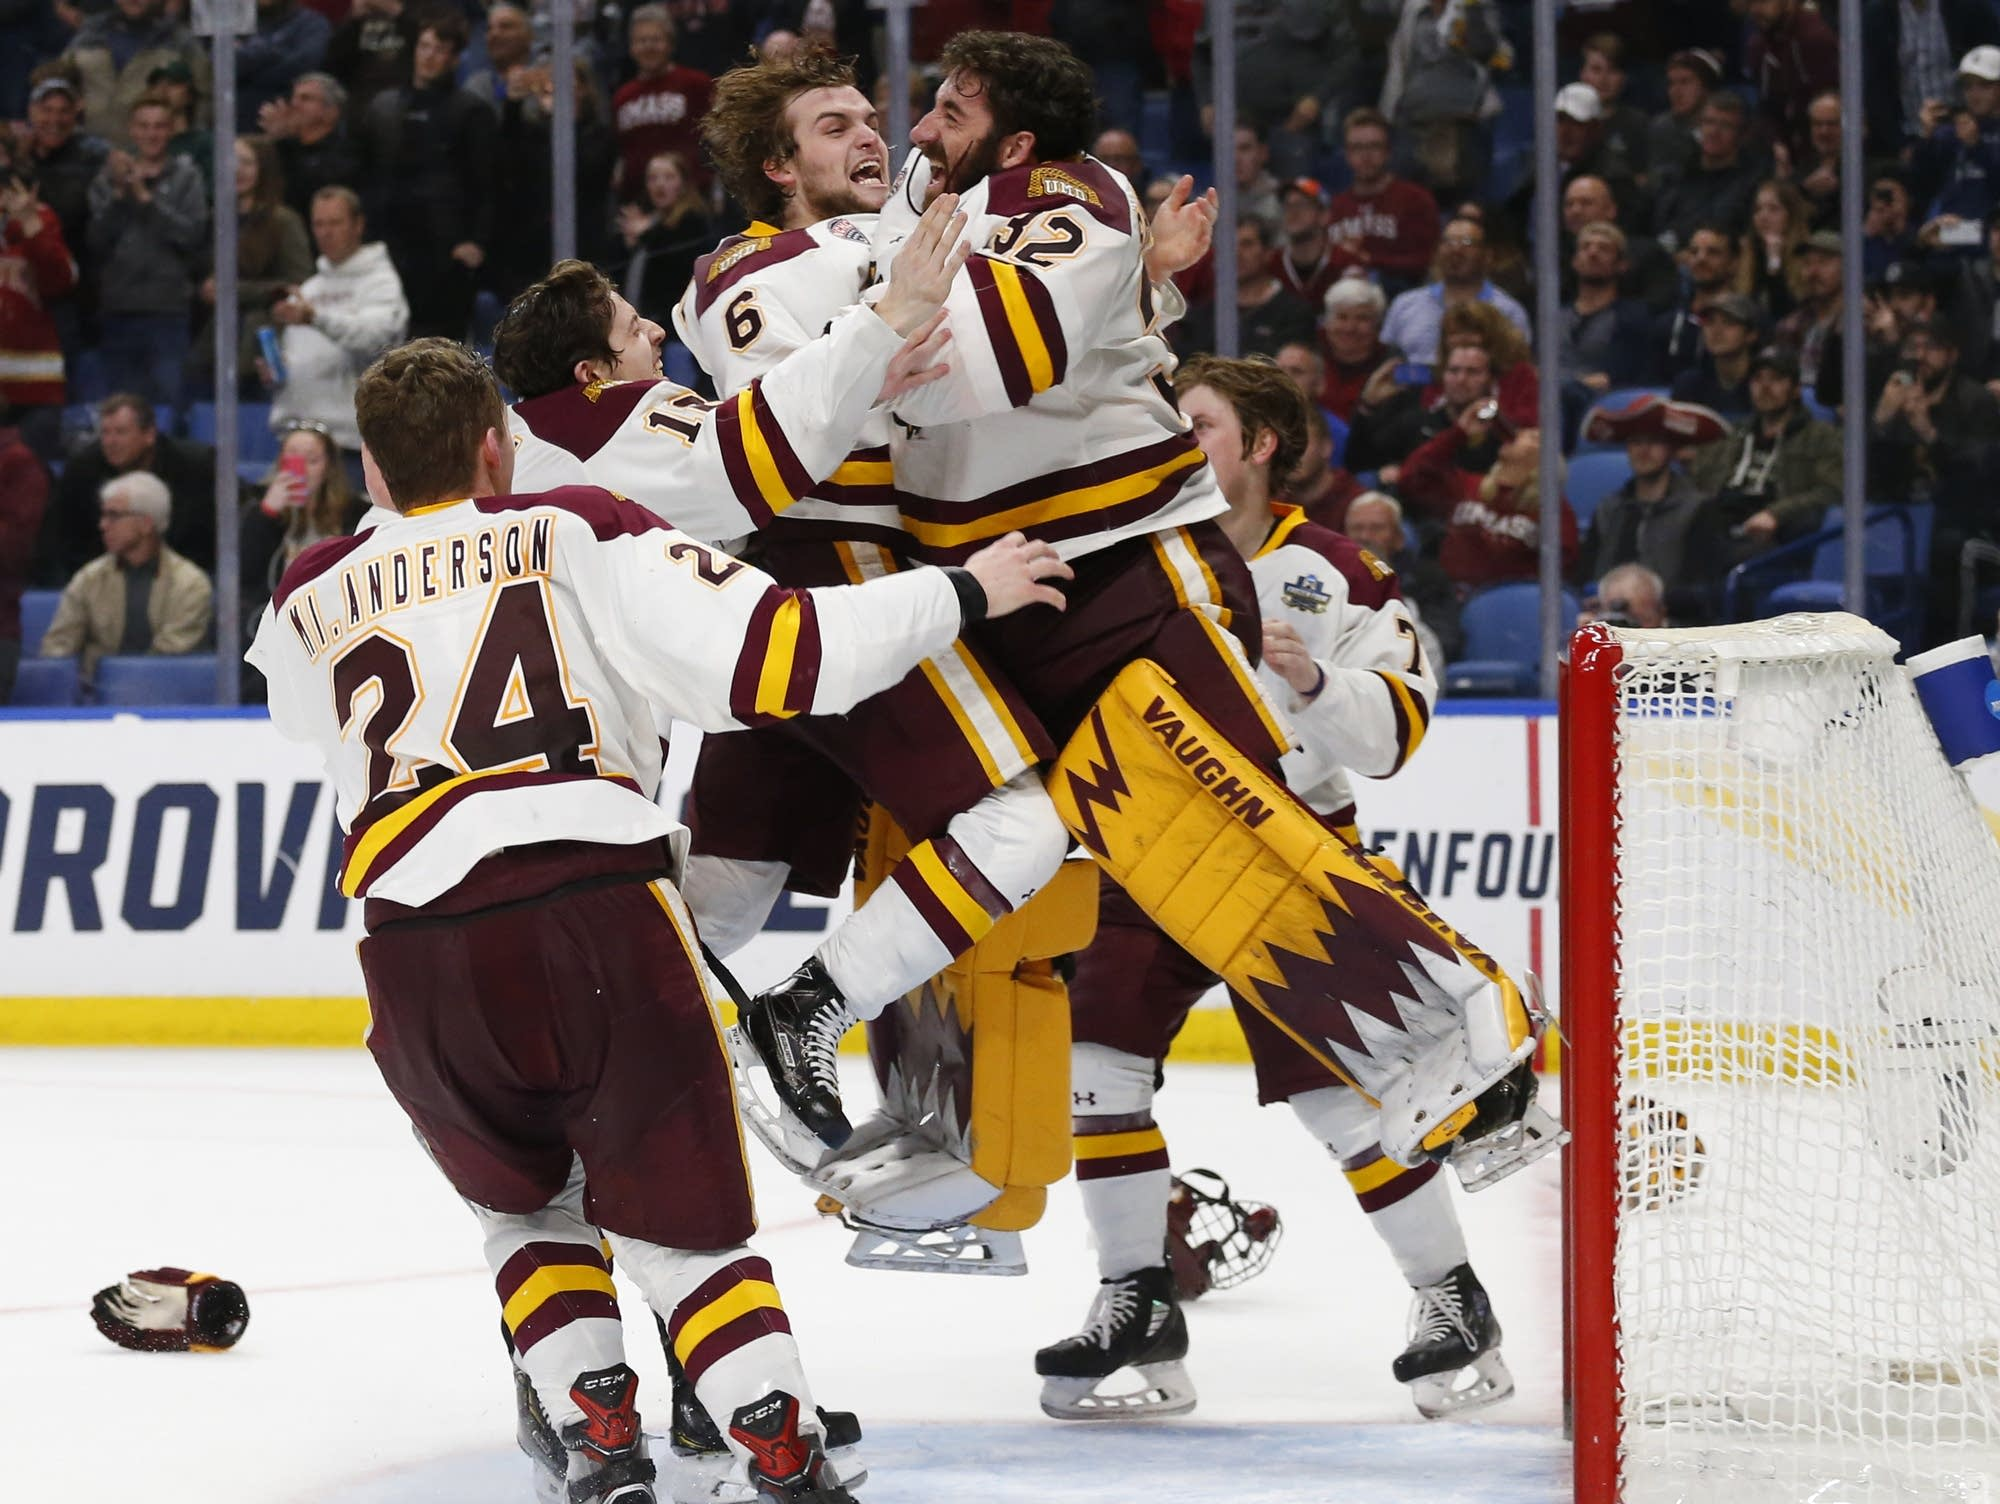 Minnesota Duluth players celebrate